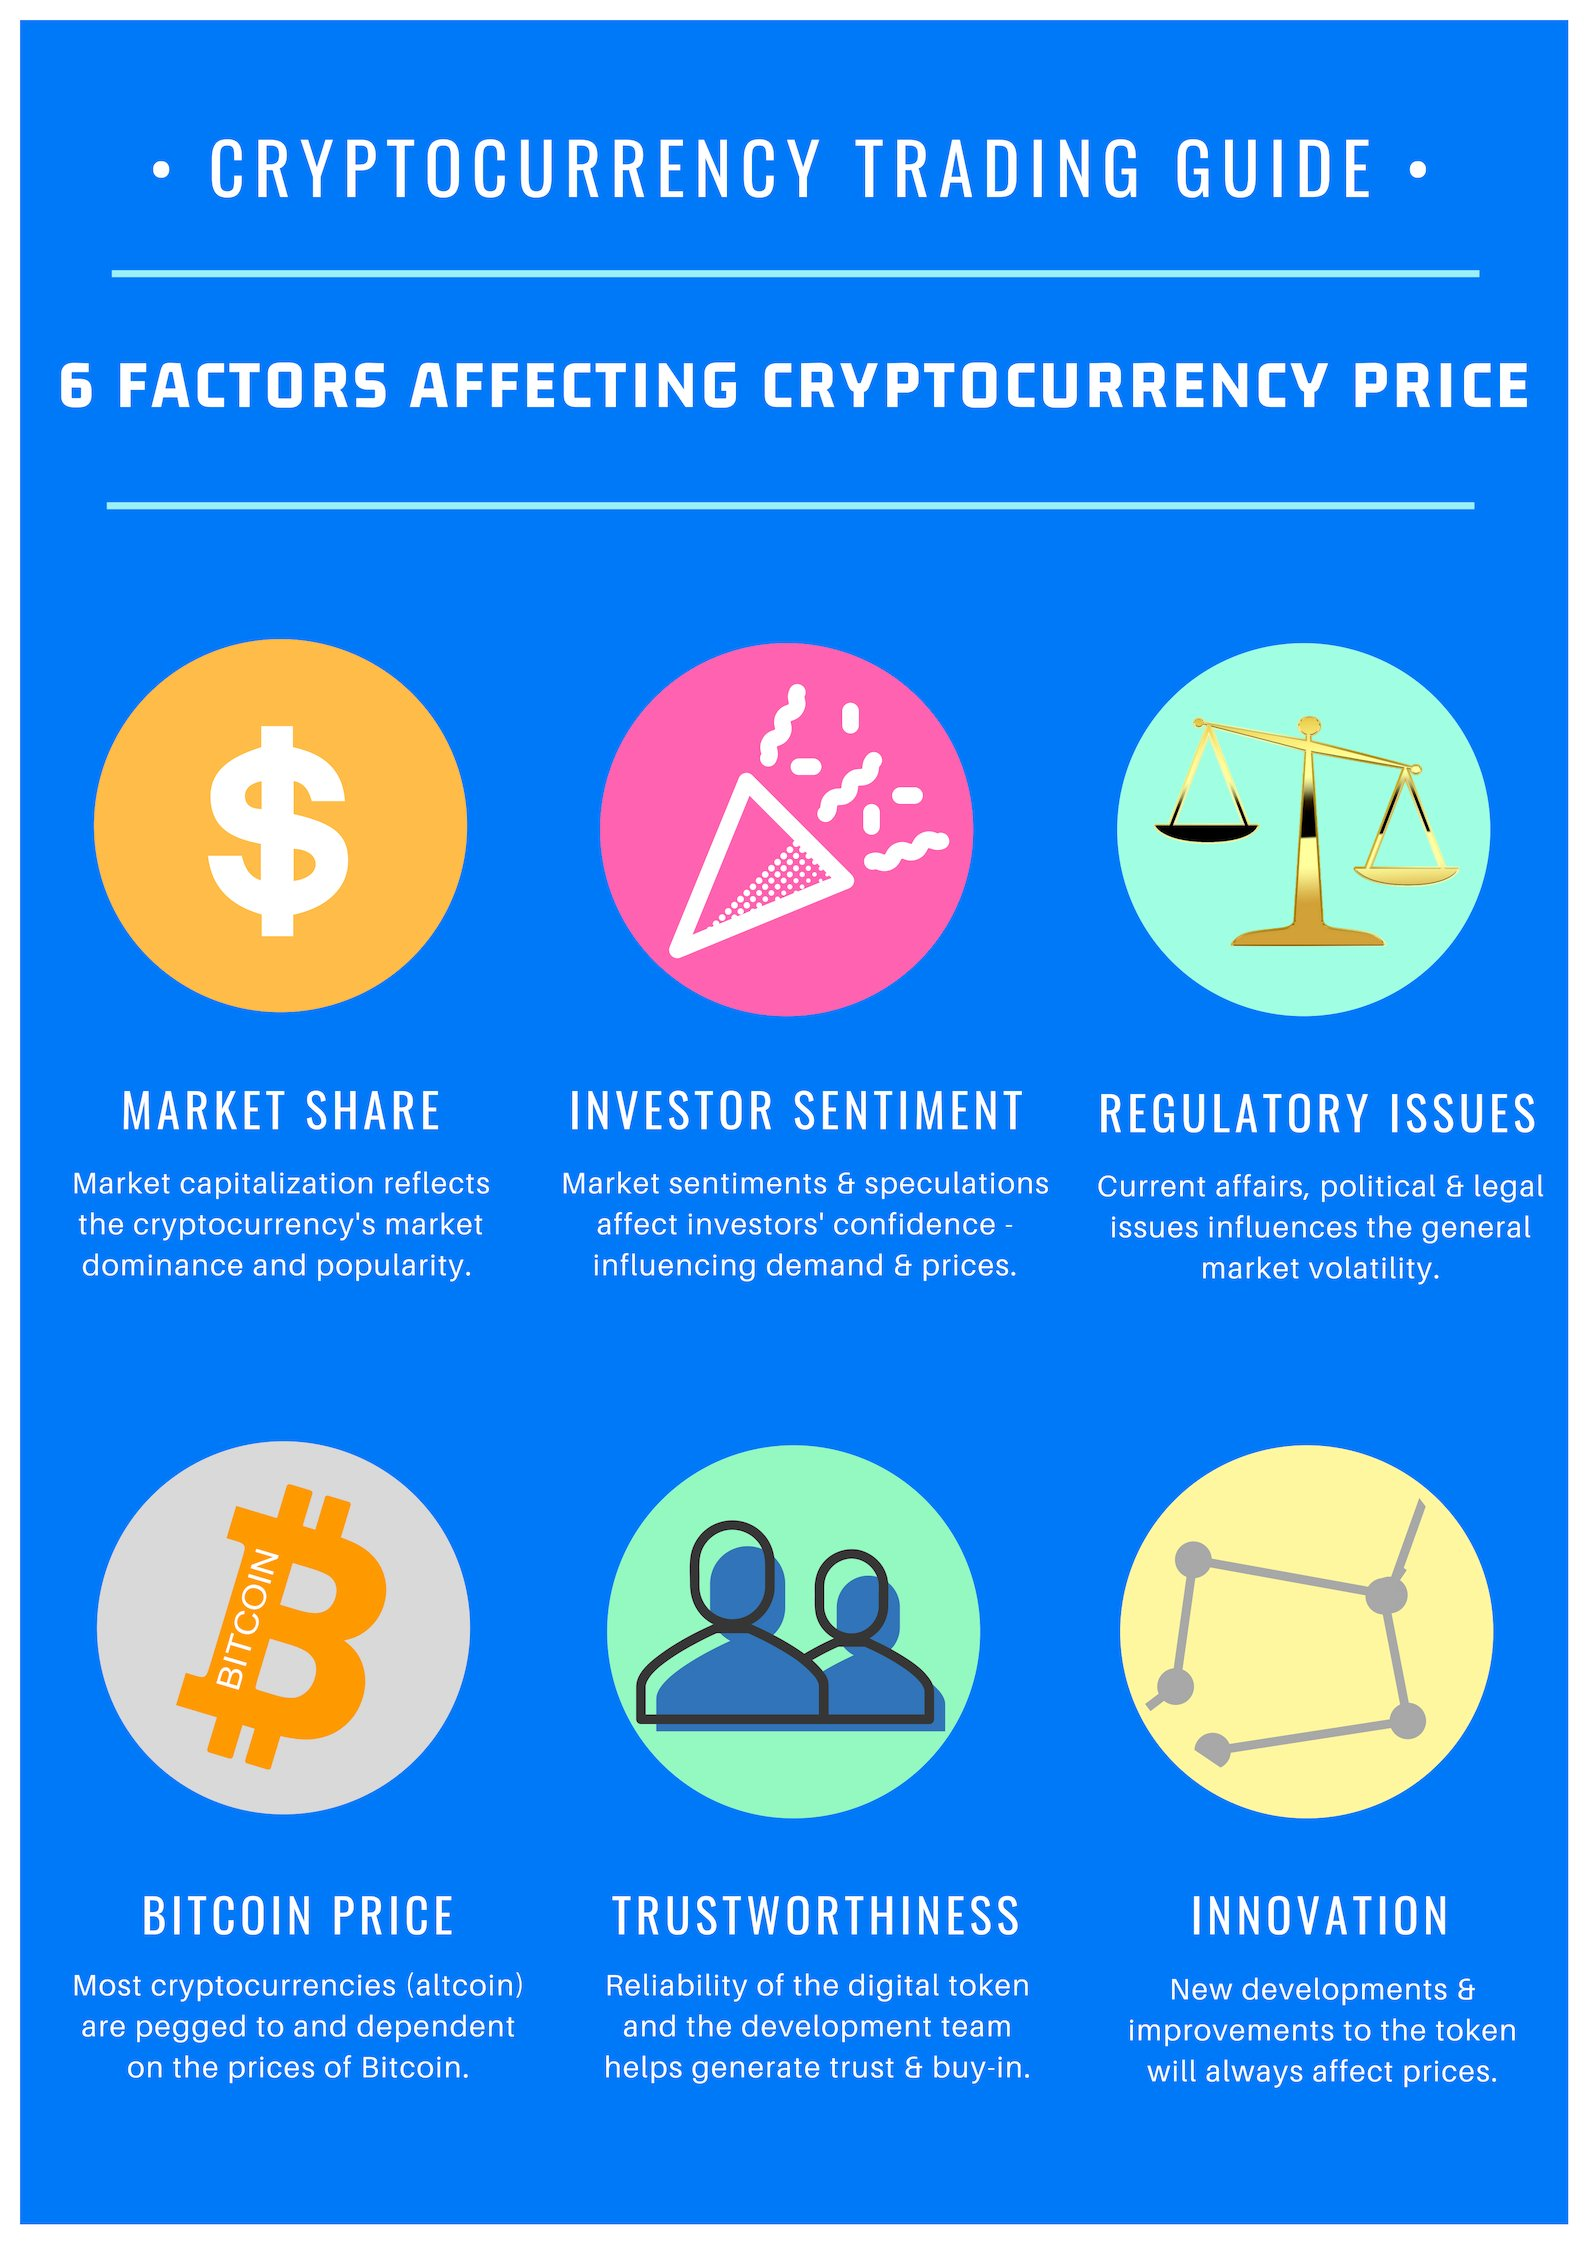 Trading-Guide-1---Factors-affecting-prices-2